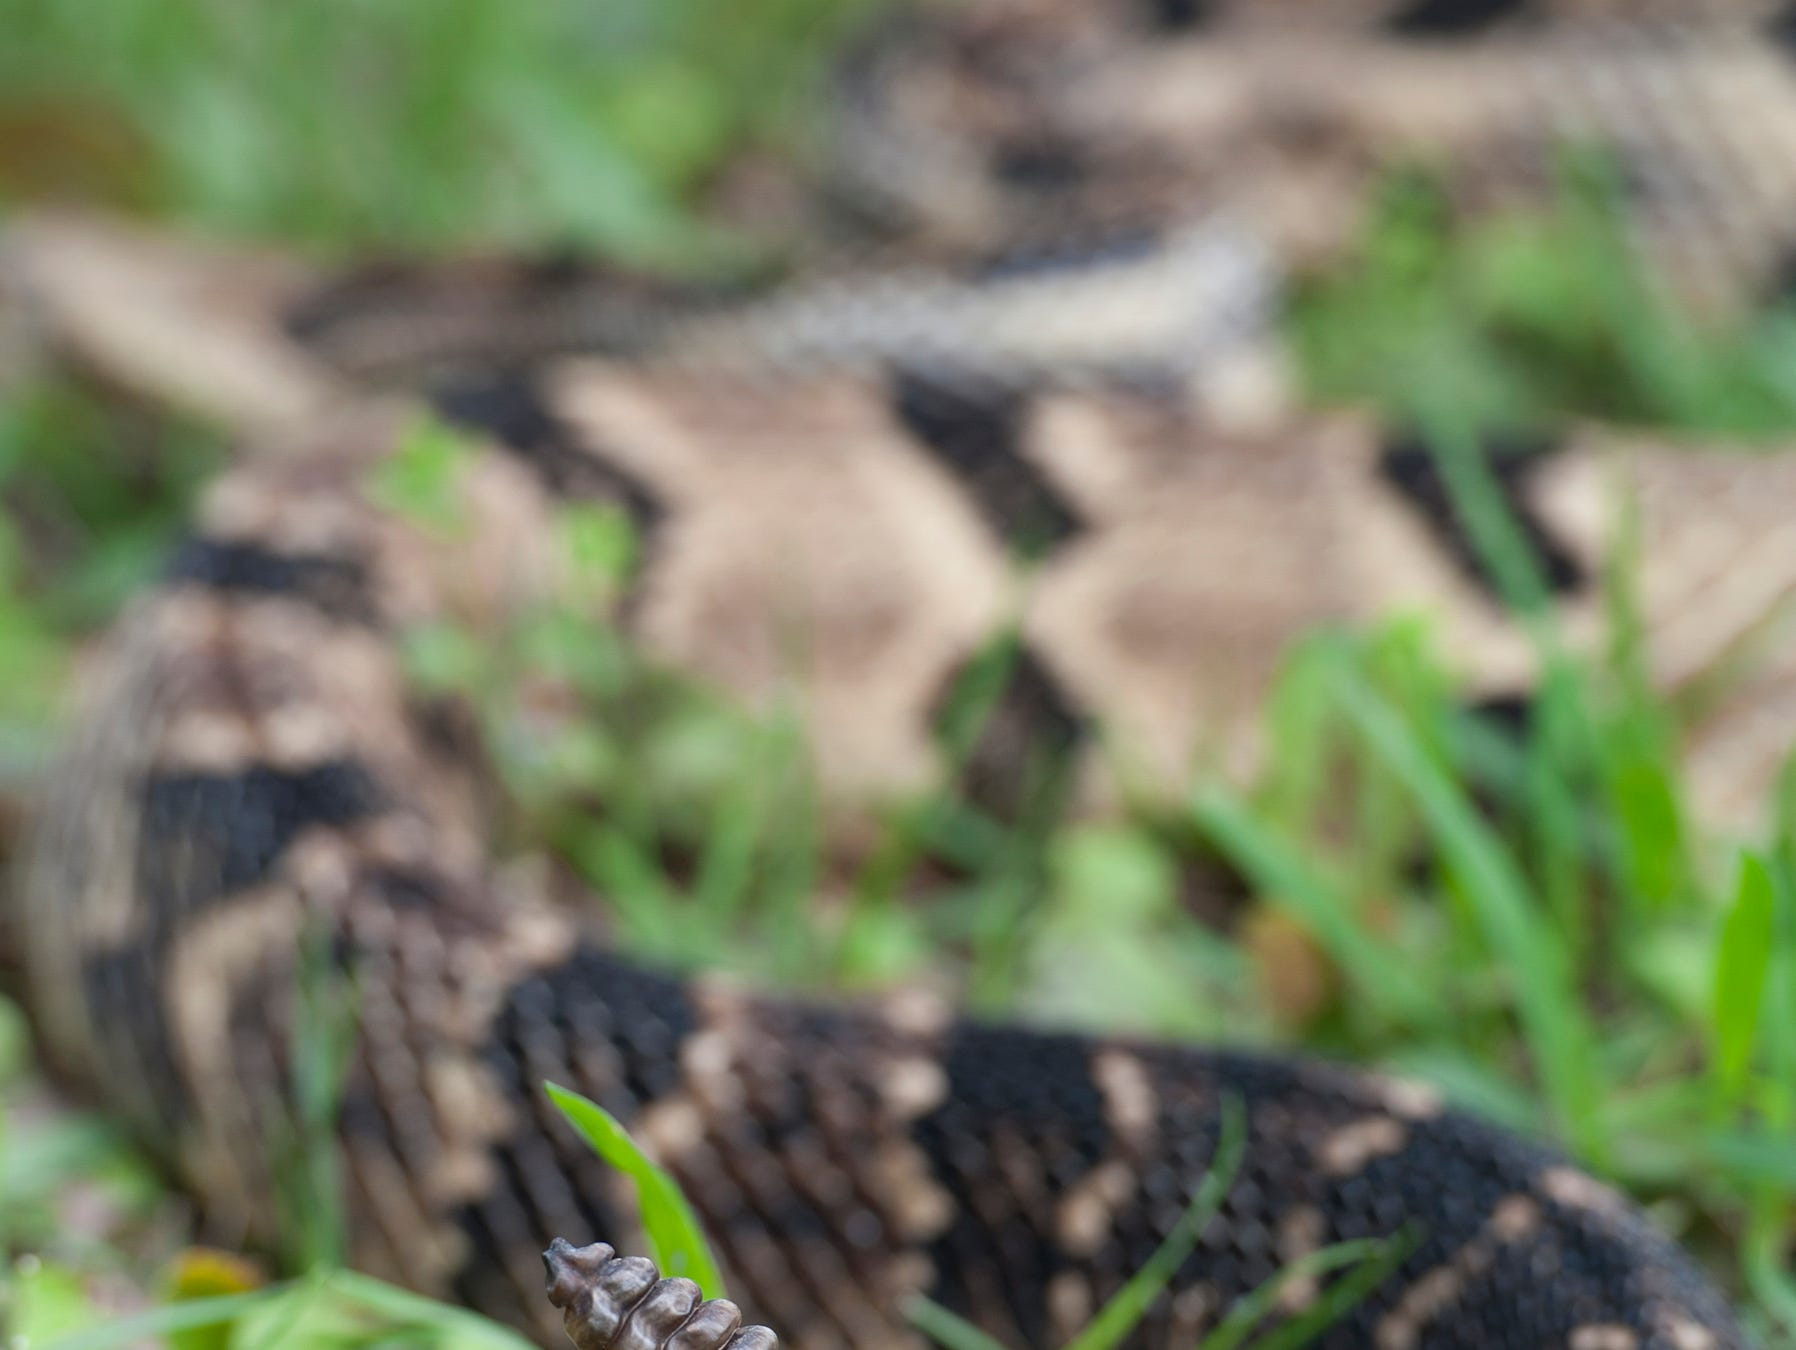 The rattlesnake is one of only six venomous snakes in Mississippi. According to herpetologist Terry Vanderventer, it is relatively rare for the snake to actually sound its rattle.